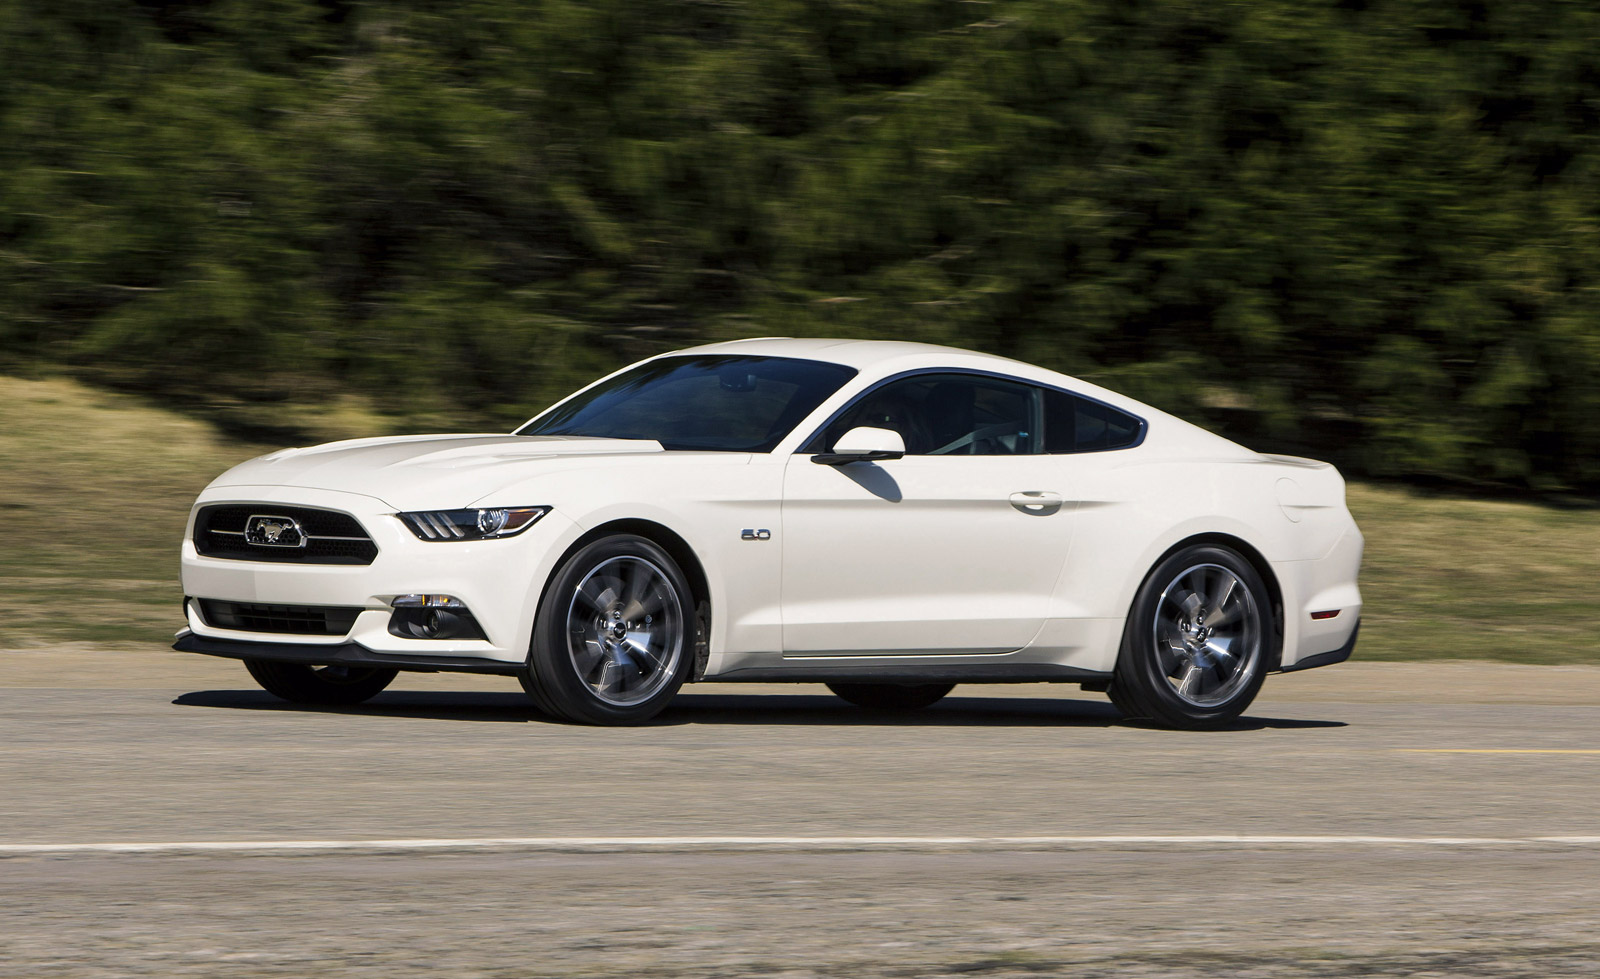 2015 Ford Mustang Gas Mileage: EPA Ratings For All Models Released